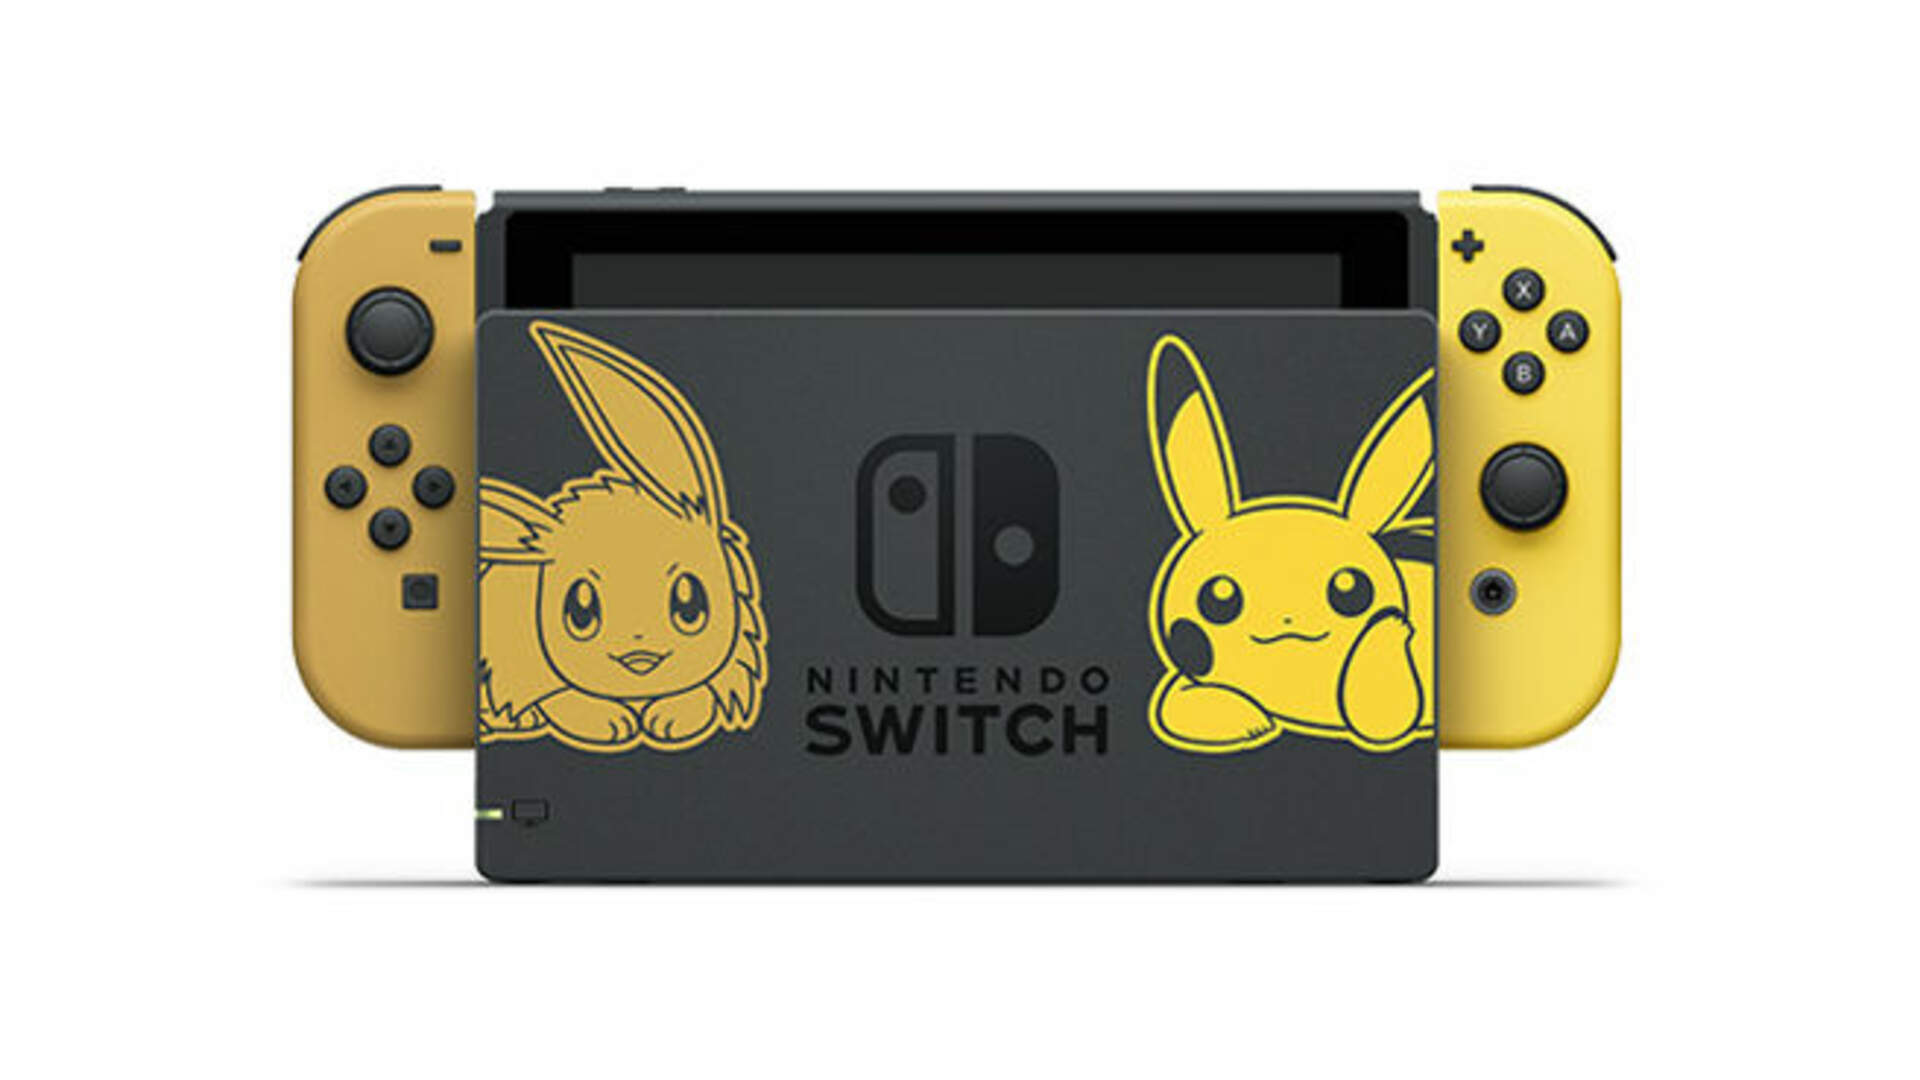 The Pokemon Let's Go Nintendo Switch is Cuter than a Basket of Growlithe Puppies